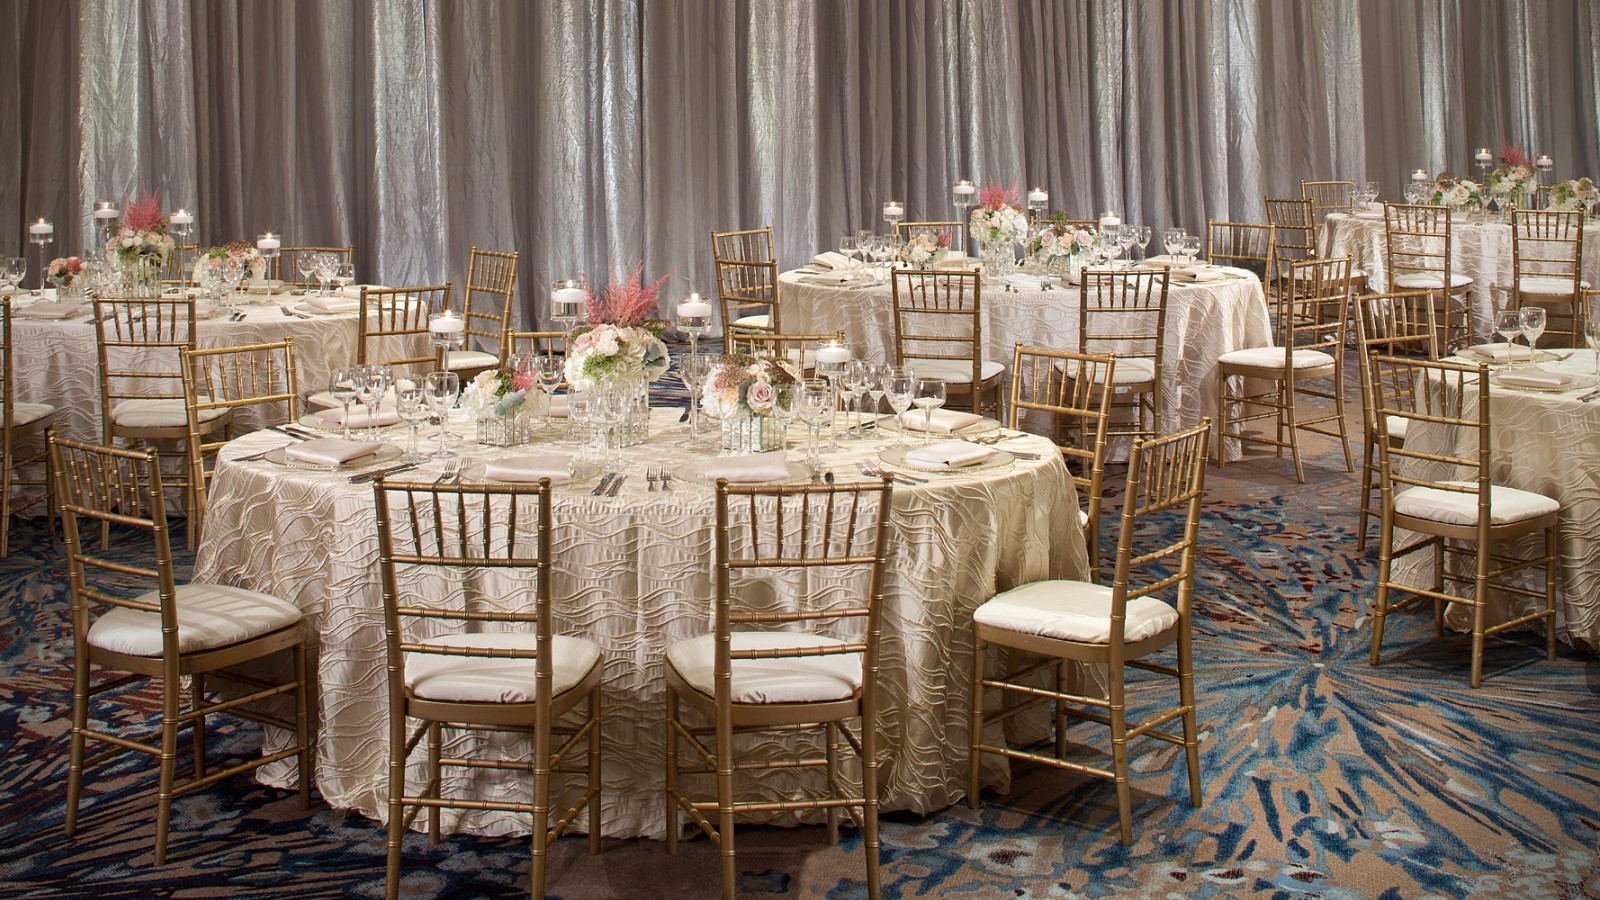 Washington D.C. Events - Wedding